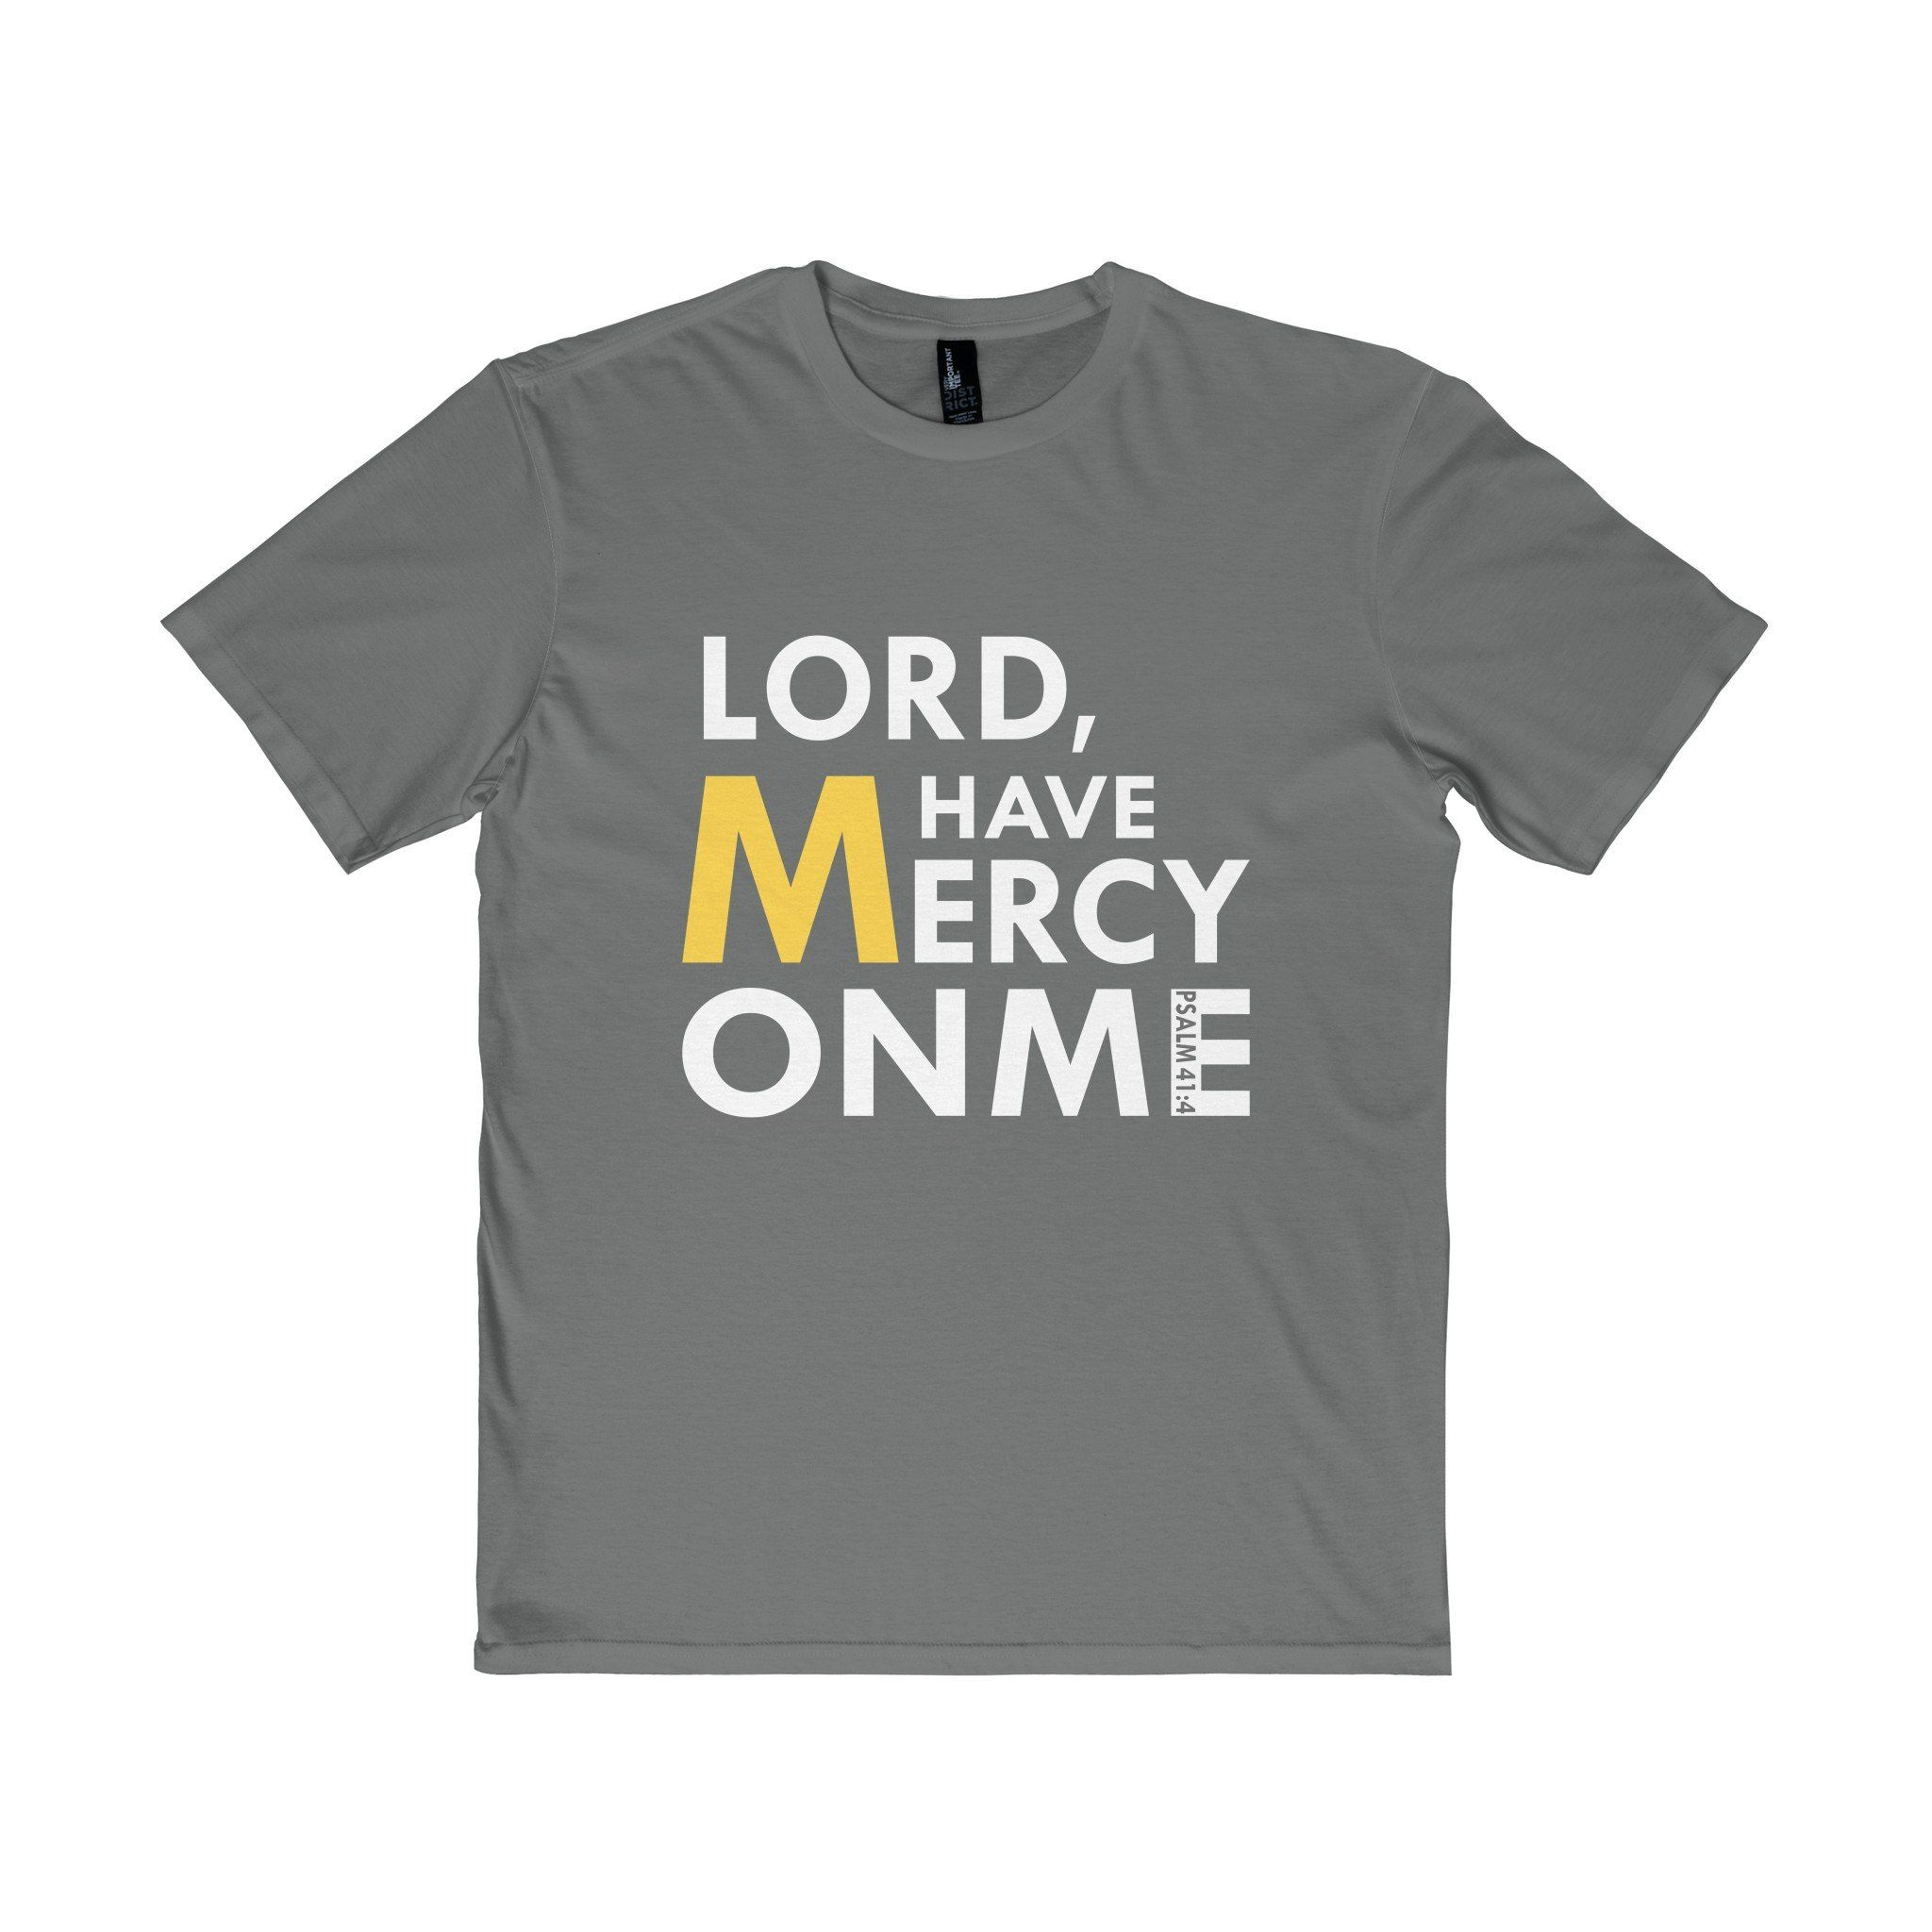 Lord, have mercy on me - Men's T-Shirt